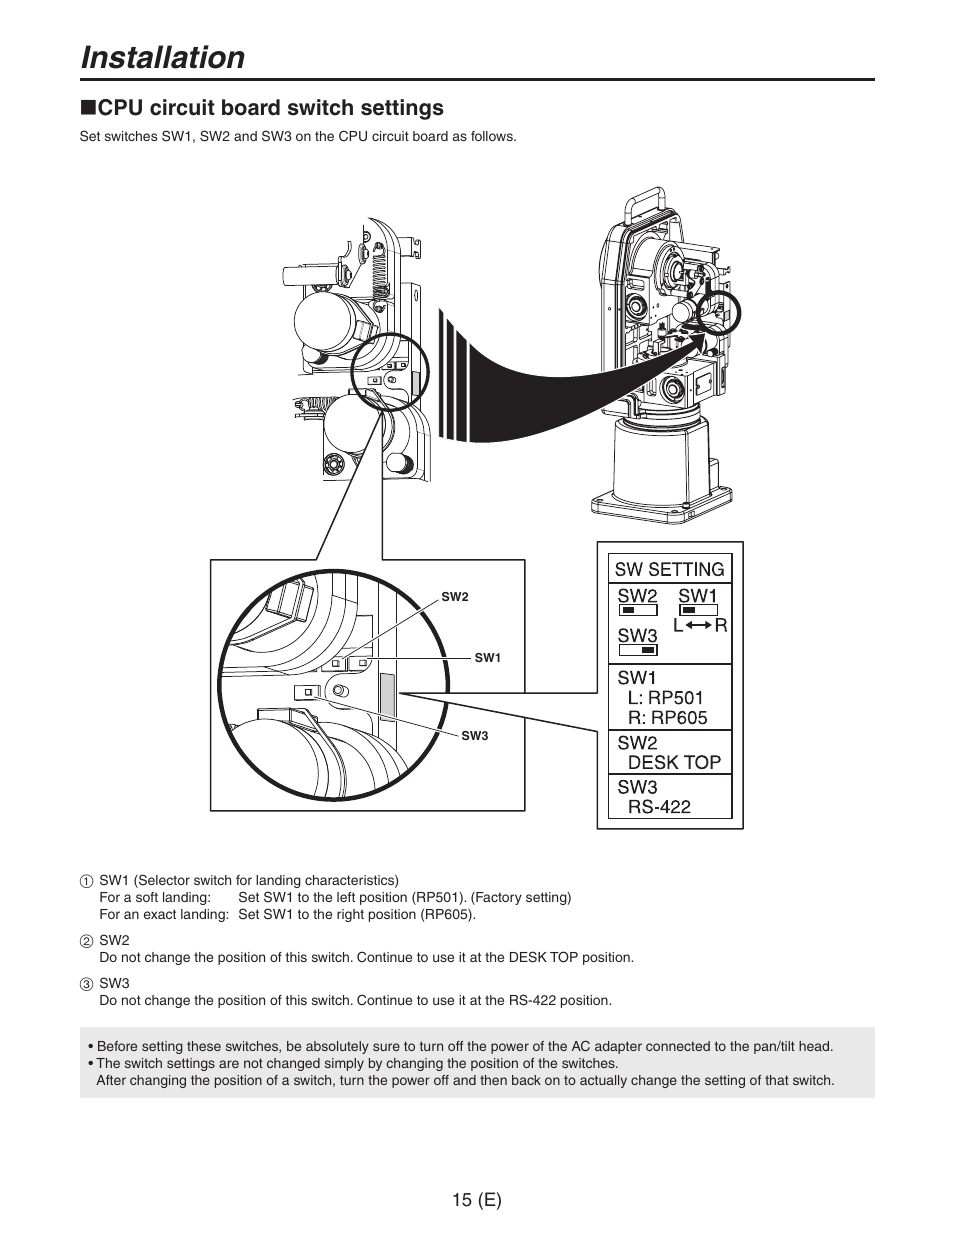 Cpu Circuit Board Switch Settings Installation Panasonic Aw Ph650 Adapter Diagram As Follows User Manual Page 16 44